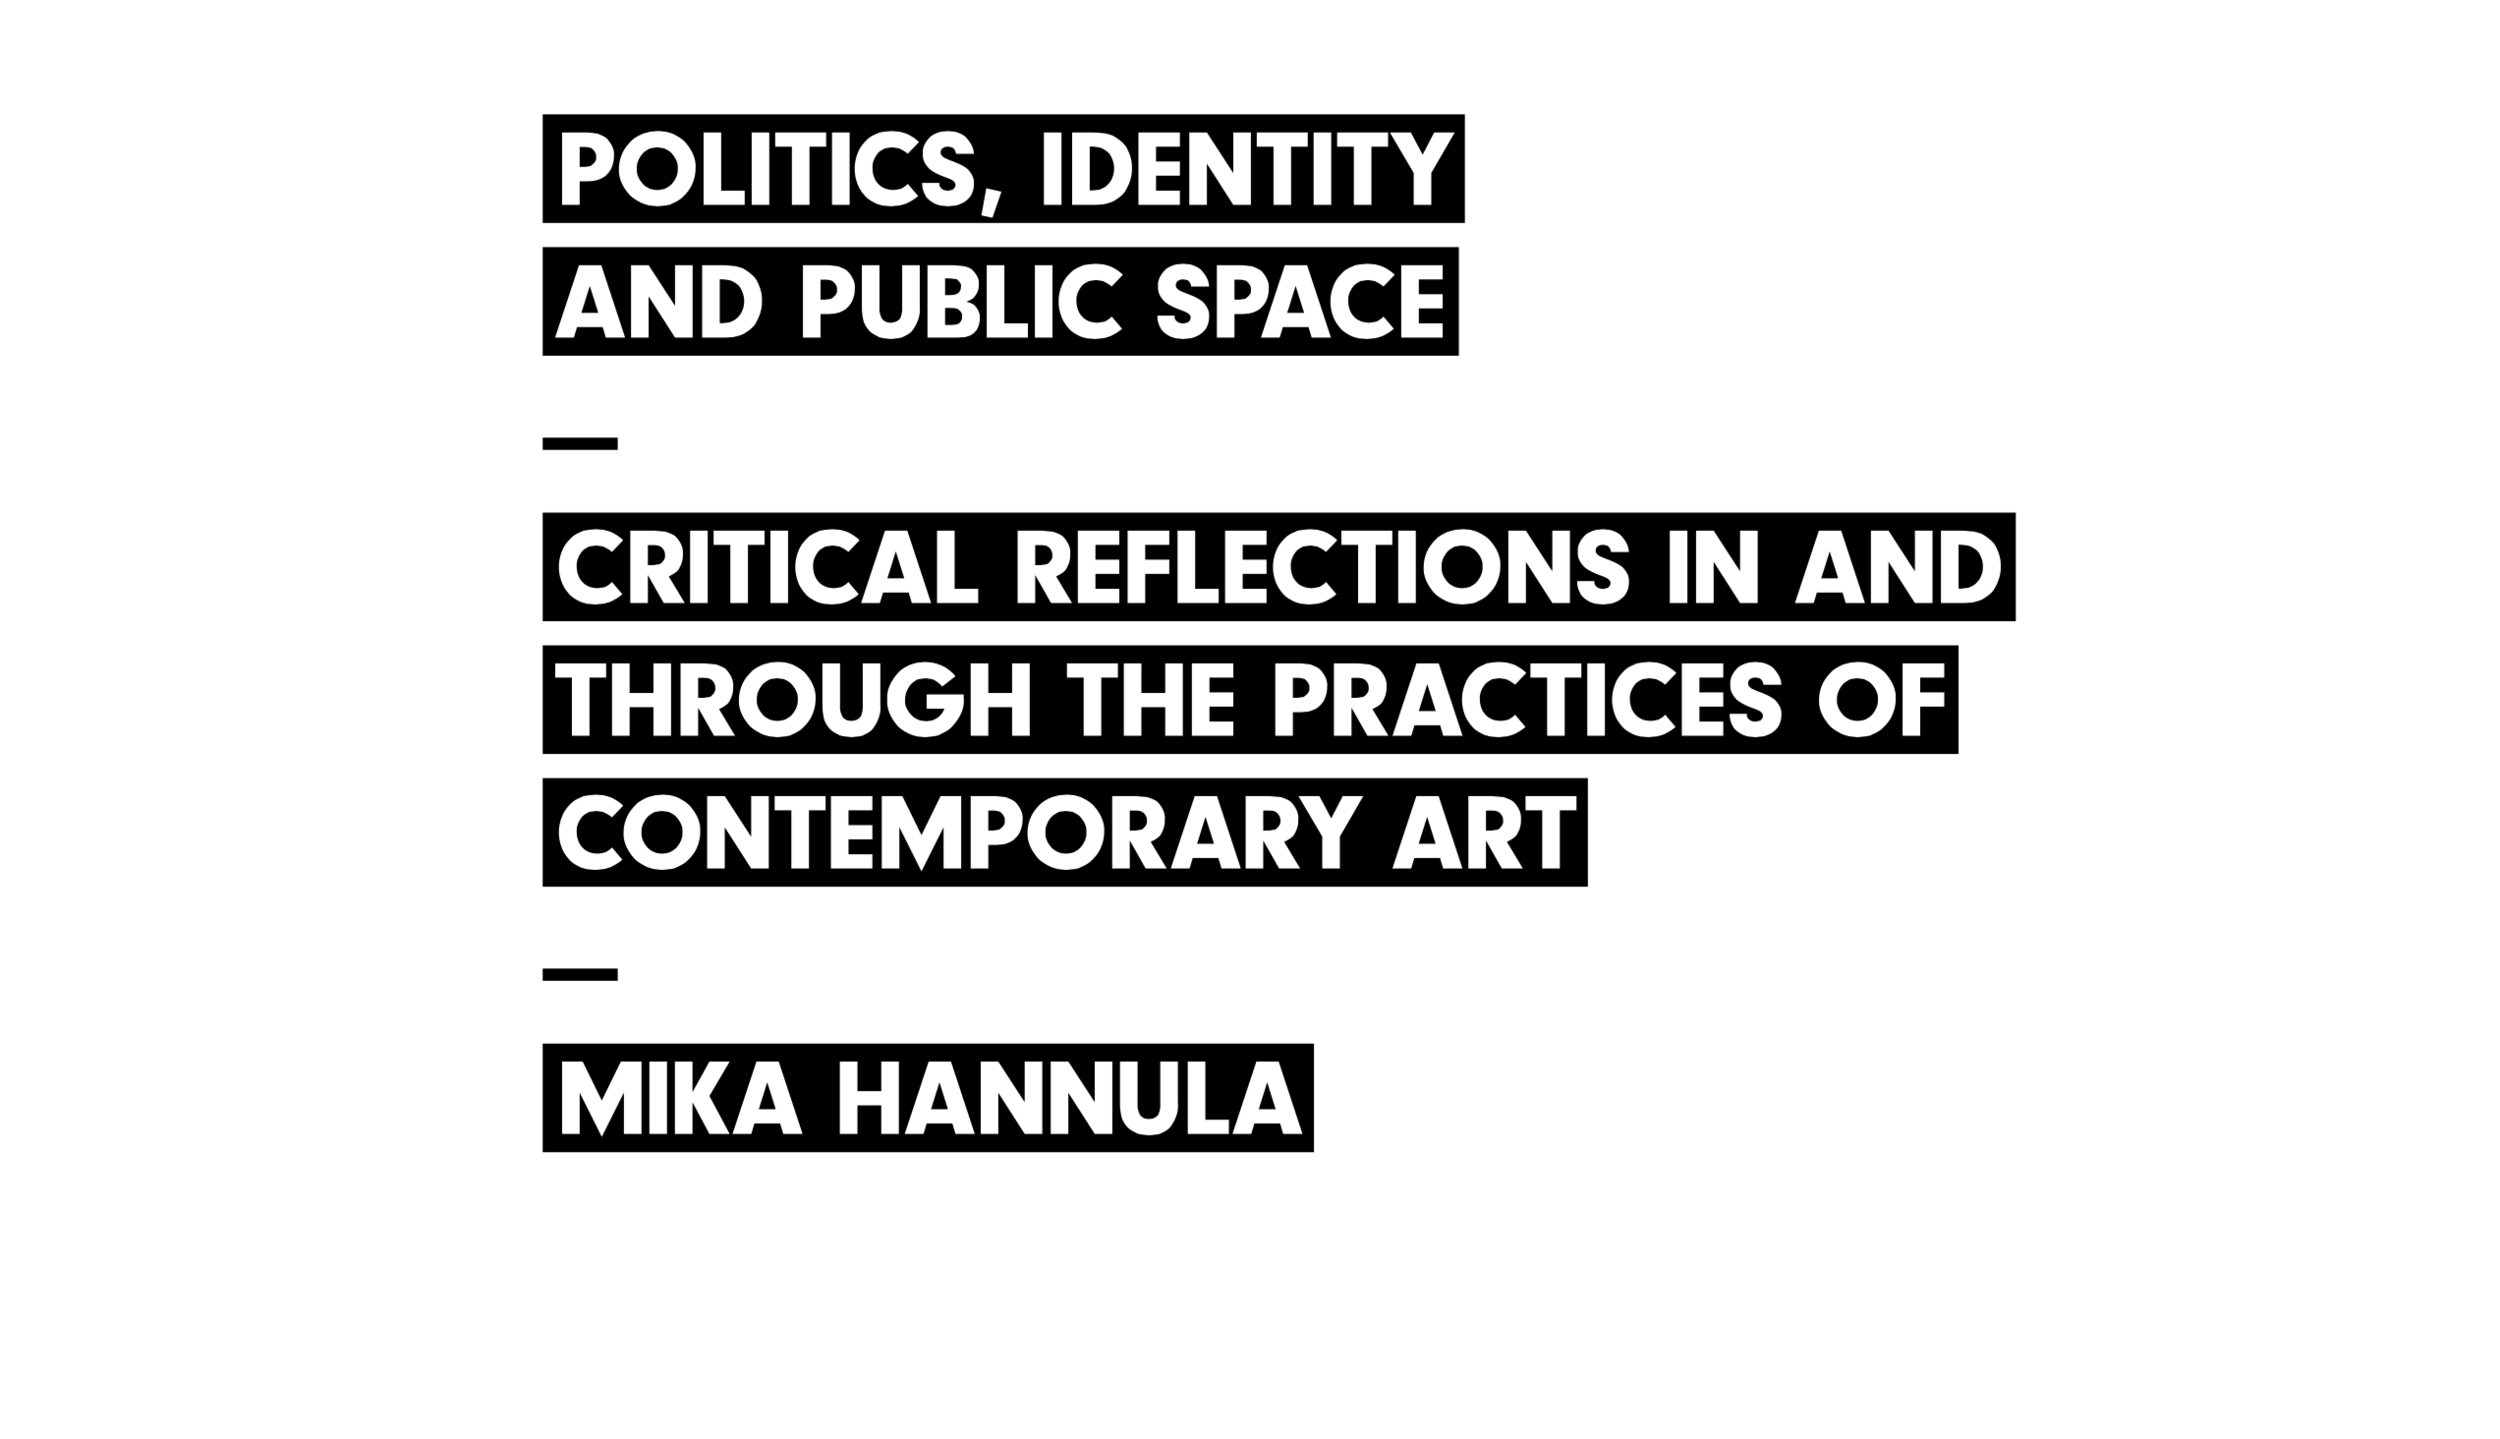 Politics, Identity and Public Space: CRITICAL REFLECTIONS IN AND THROUGH THE PRACTICES OF CONTEMPORARY ART